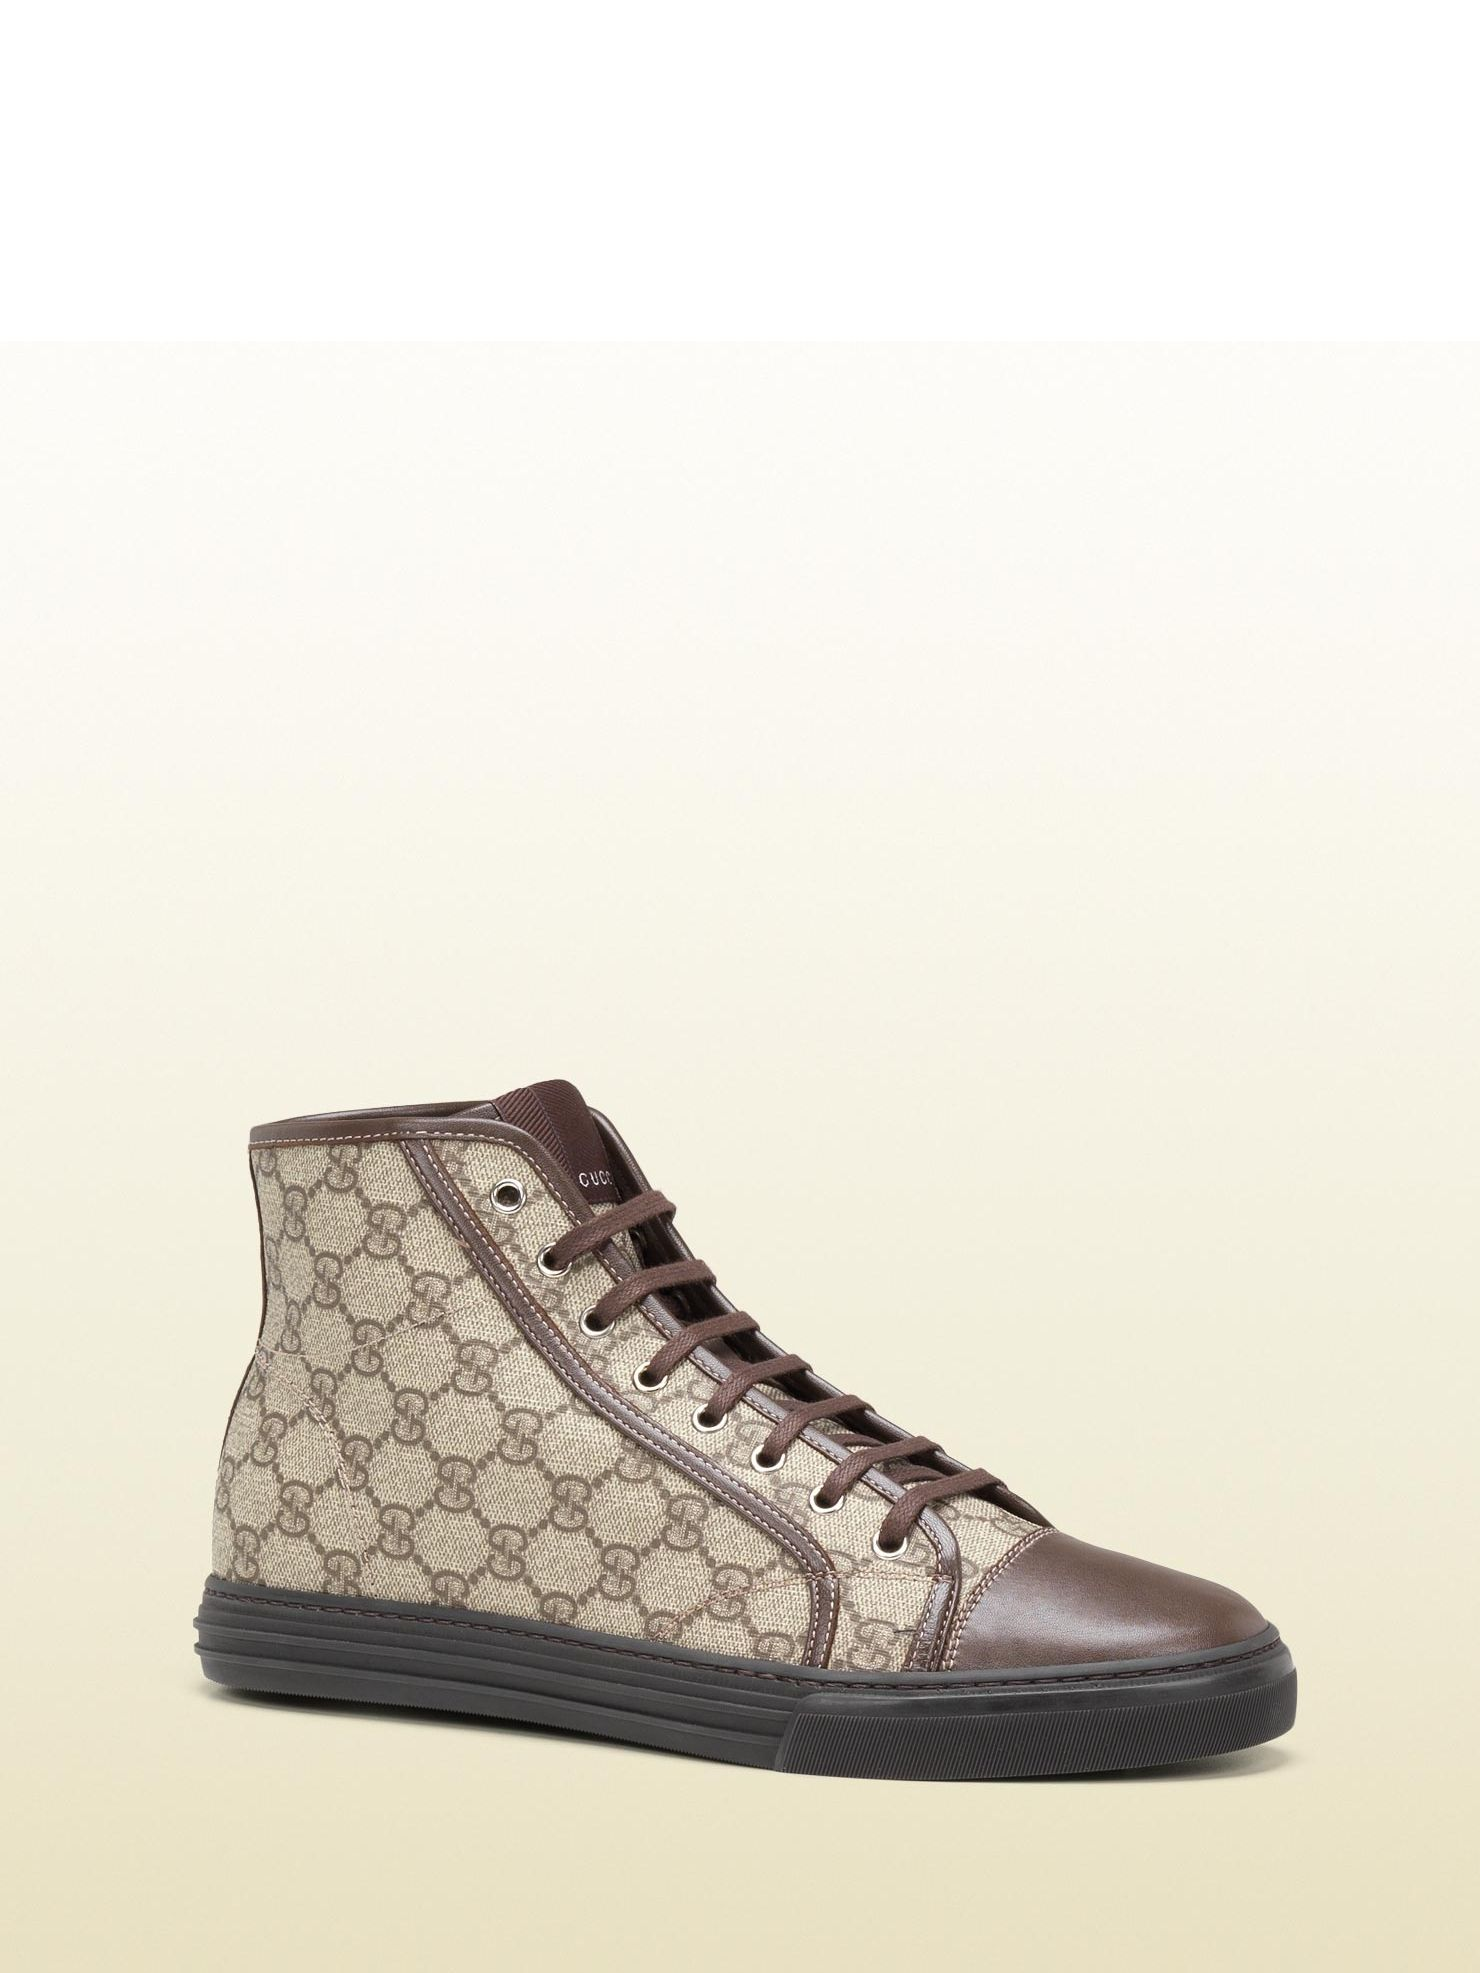 2af3fd0368e5d Gucci - 295383 FCIT0 9795 - hi-top lace-up sneaker - beige ebony GG plus  with brown leather trim Made in Italy rubber sole with embossed gucci  script logo ...